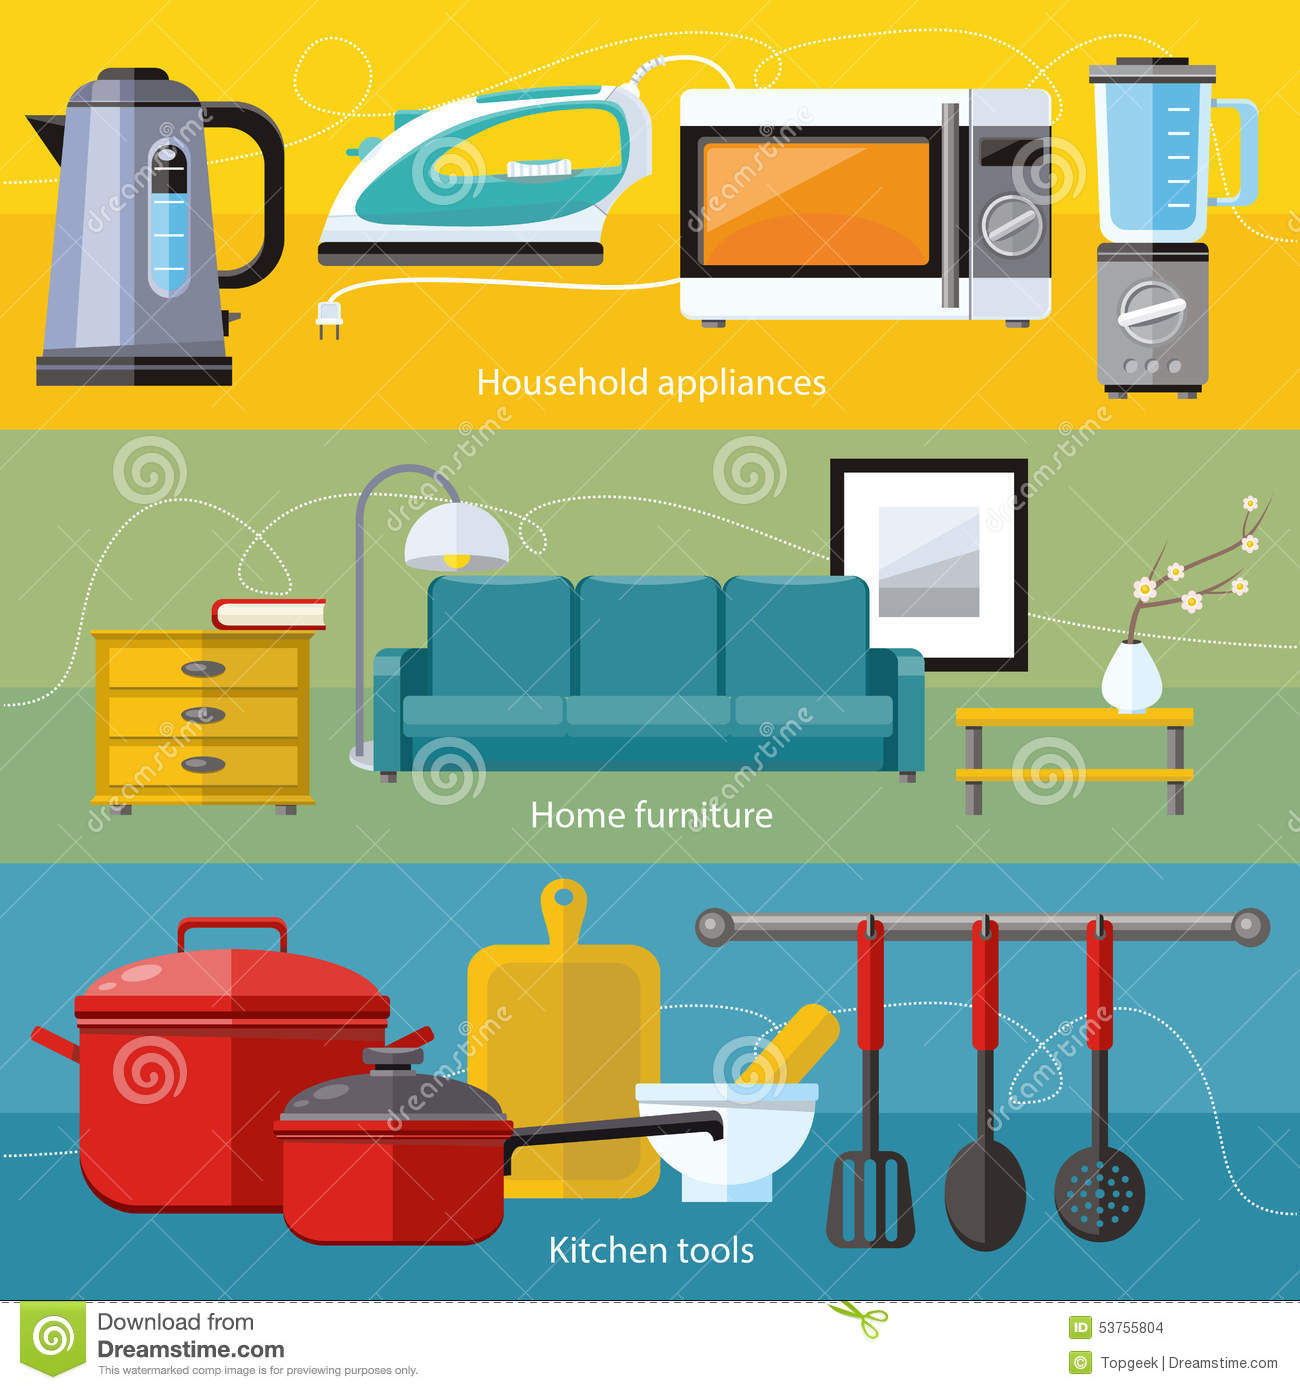 Household appliance furniture cooking serve meal stock vector image 53755804 - Household tools ...